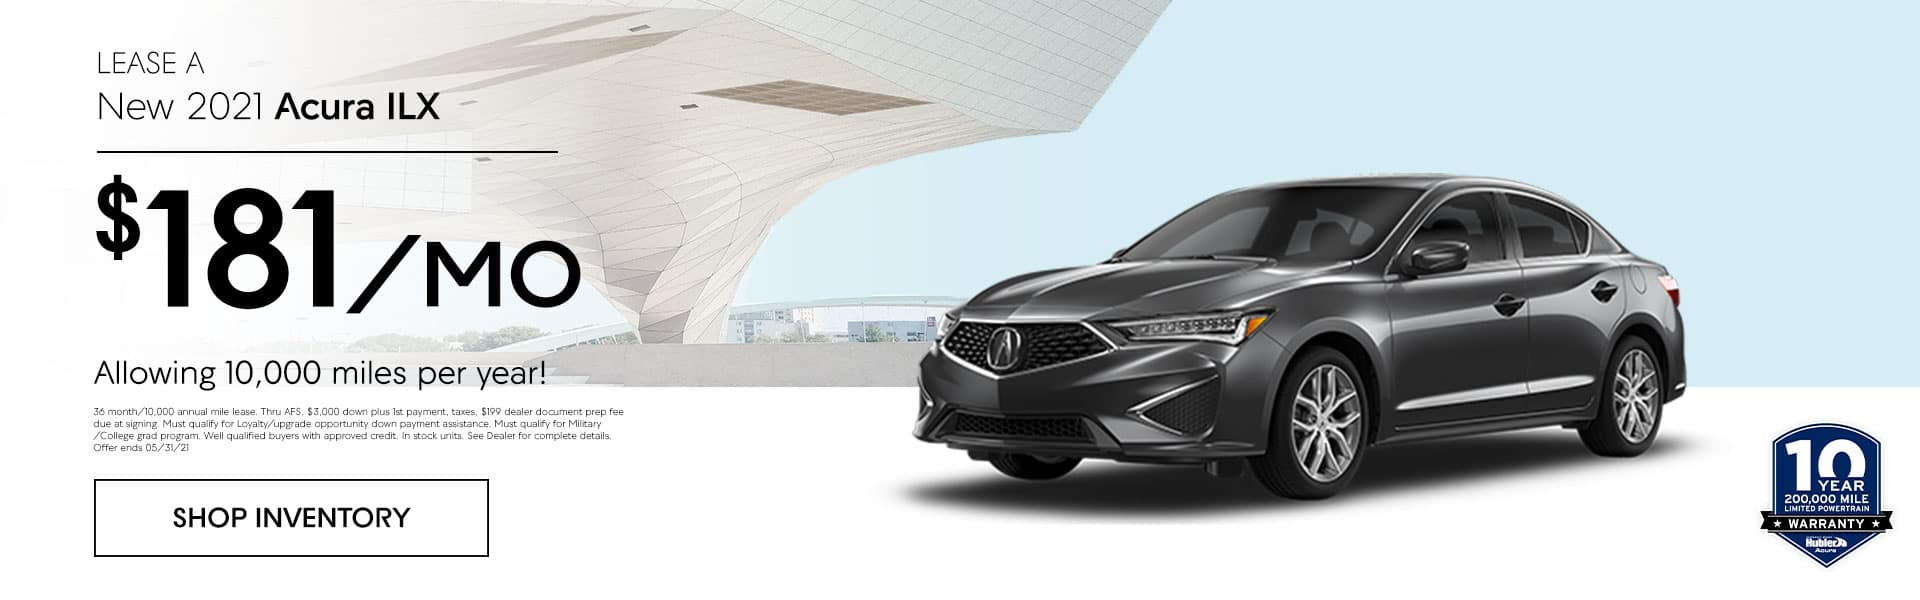 2020 Acura TLX 2.4 Lease for just $255.00 per month for 36 months allowing 10,000 miles per year!